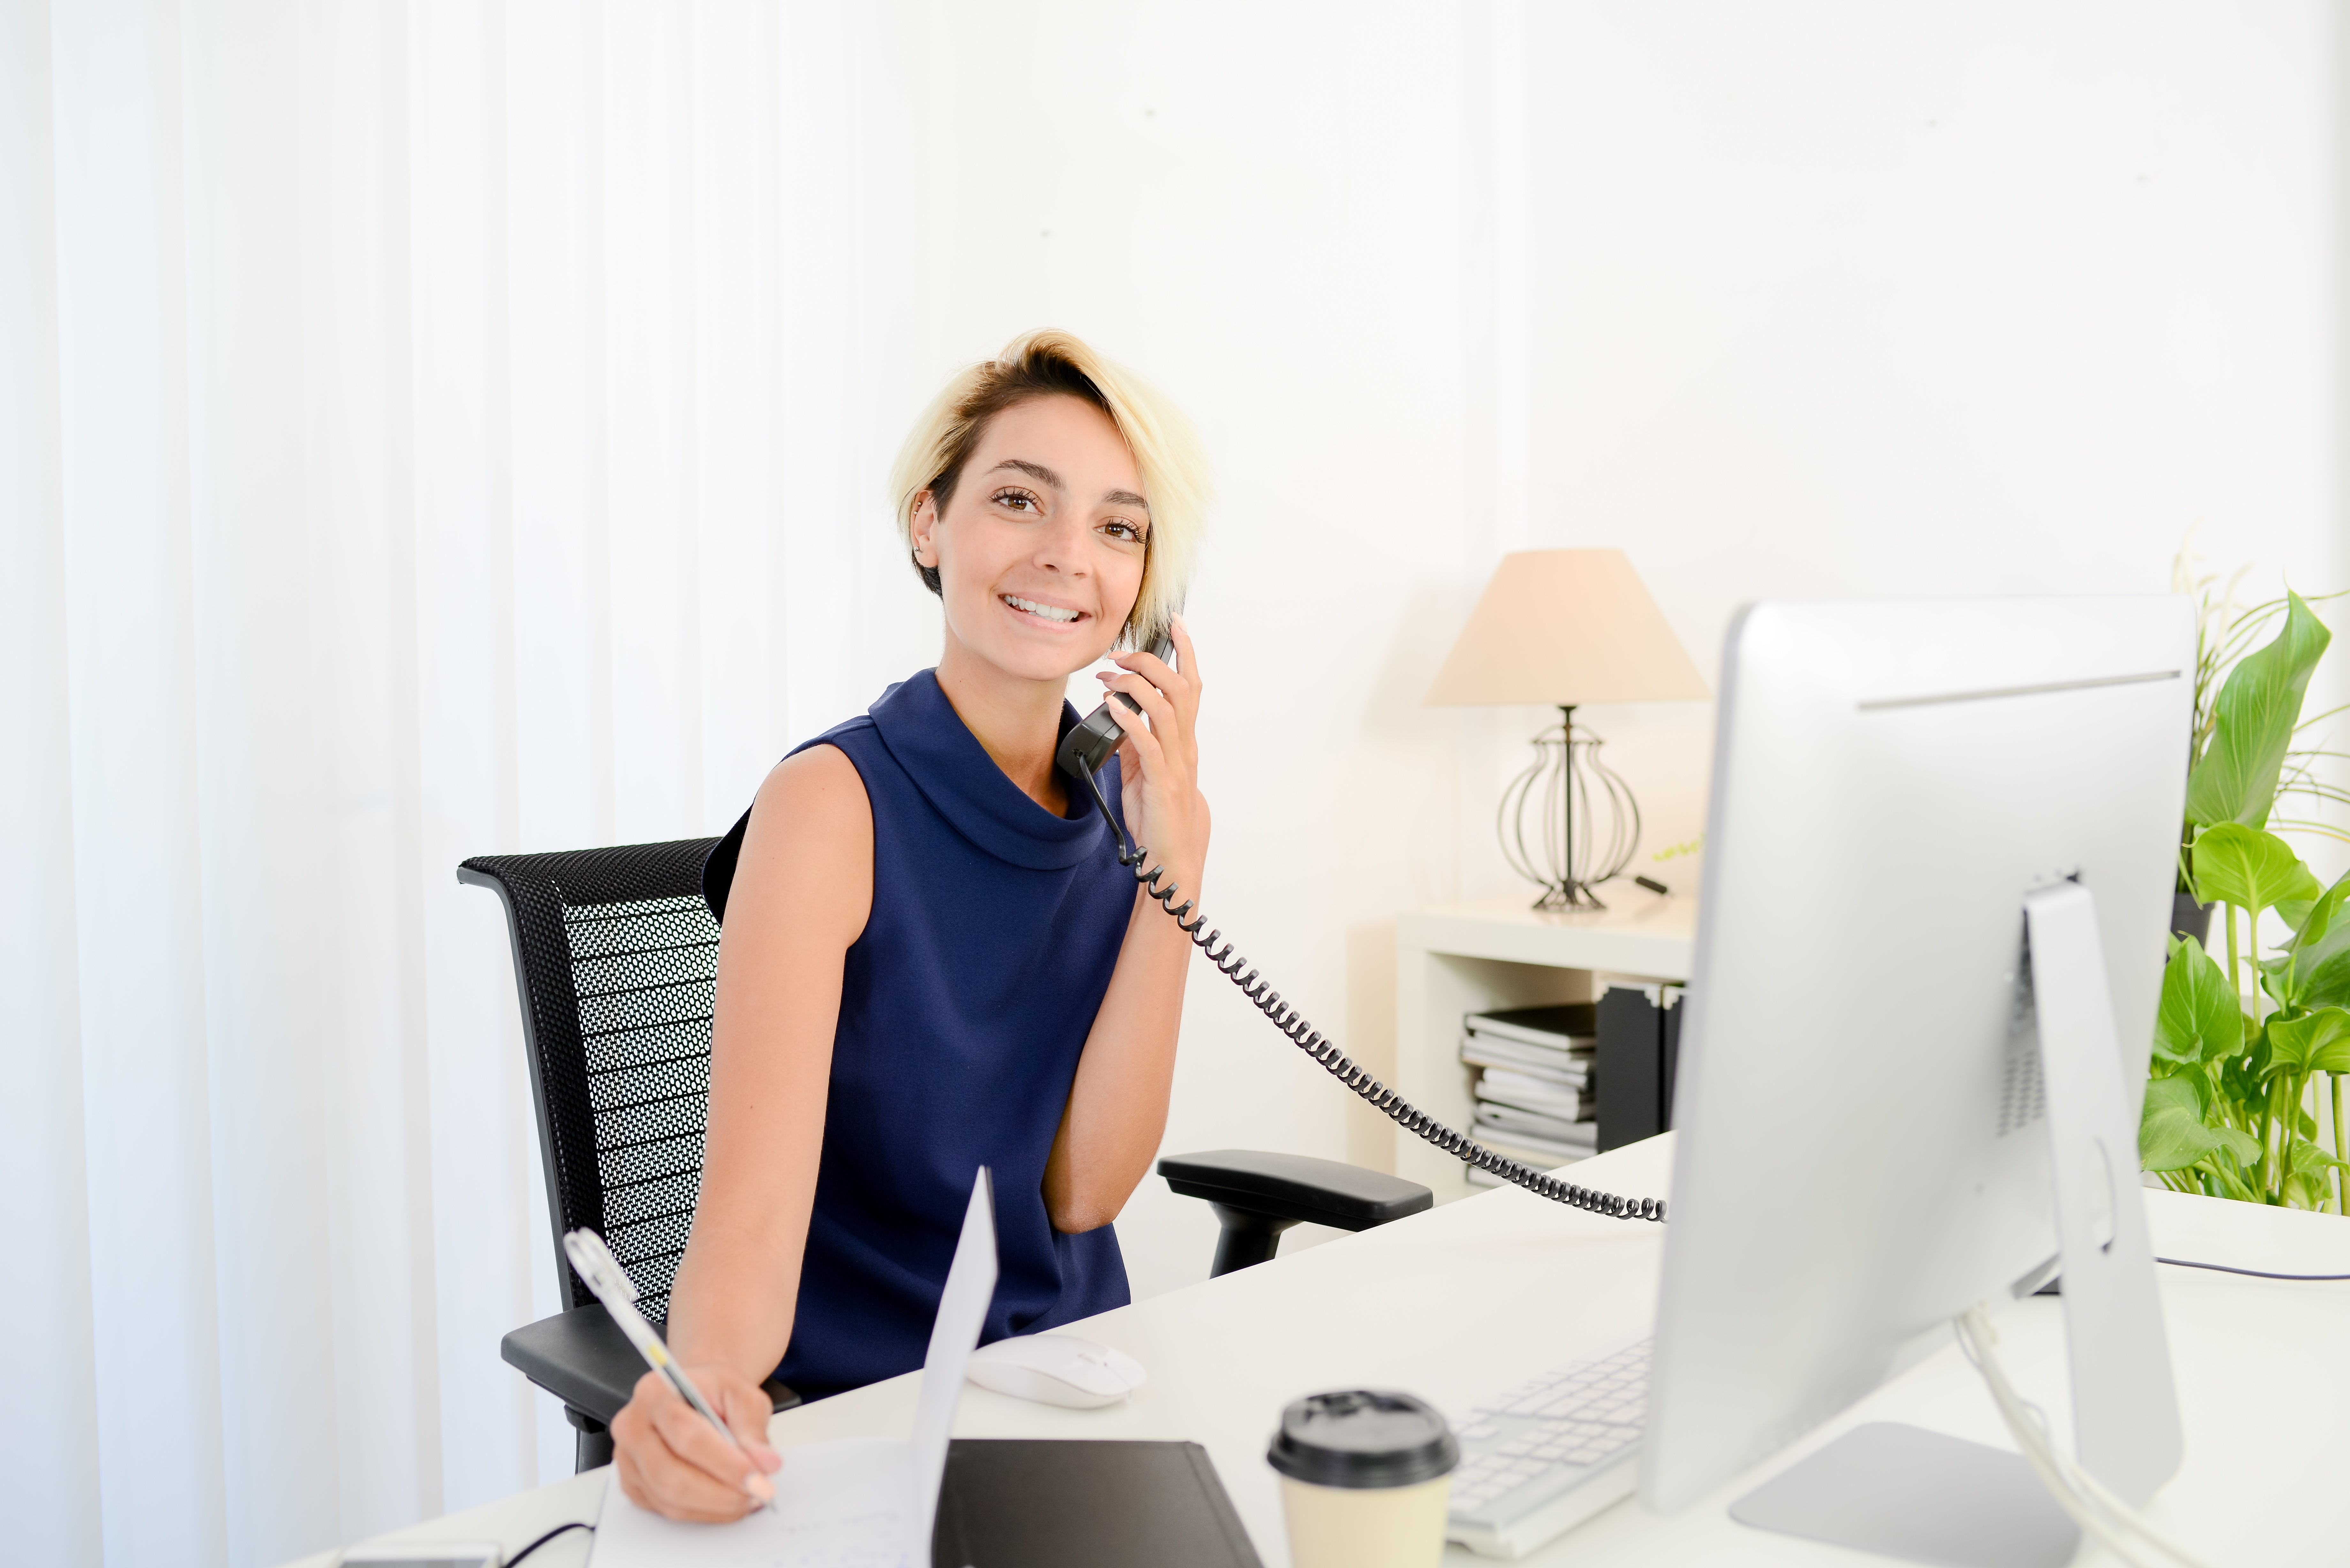 beautiful young business woman working at desk in white and bright office